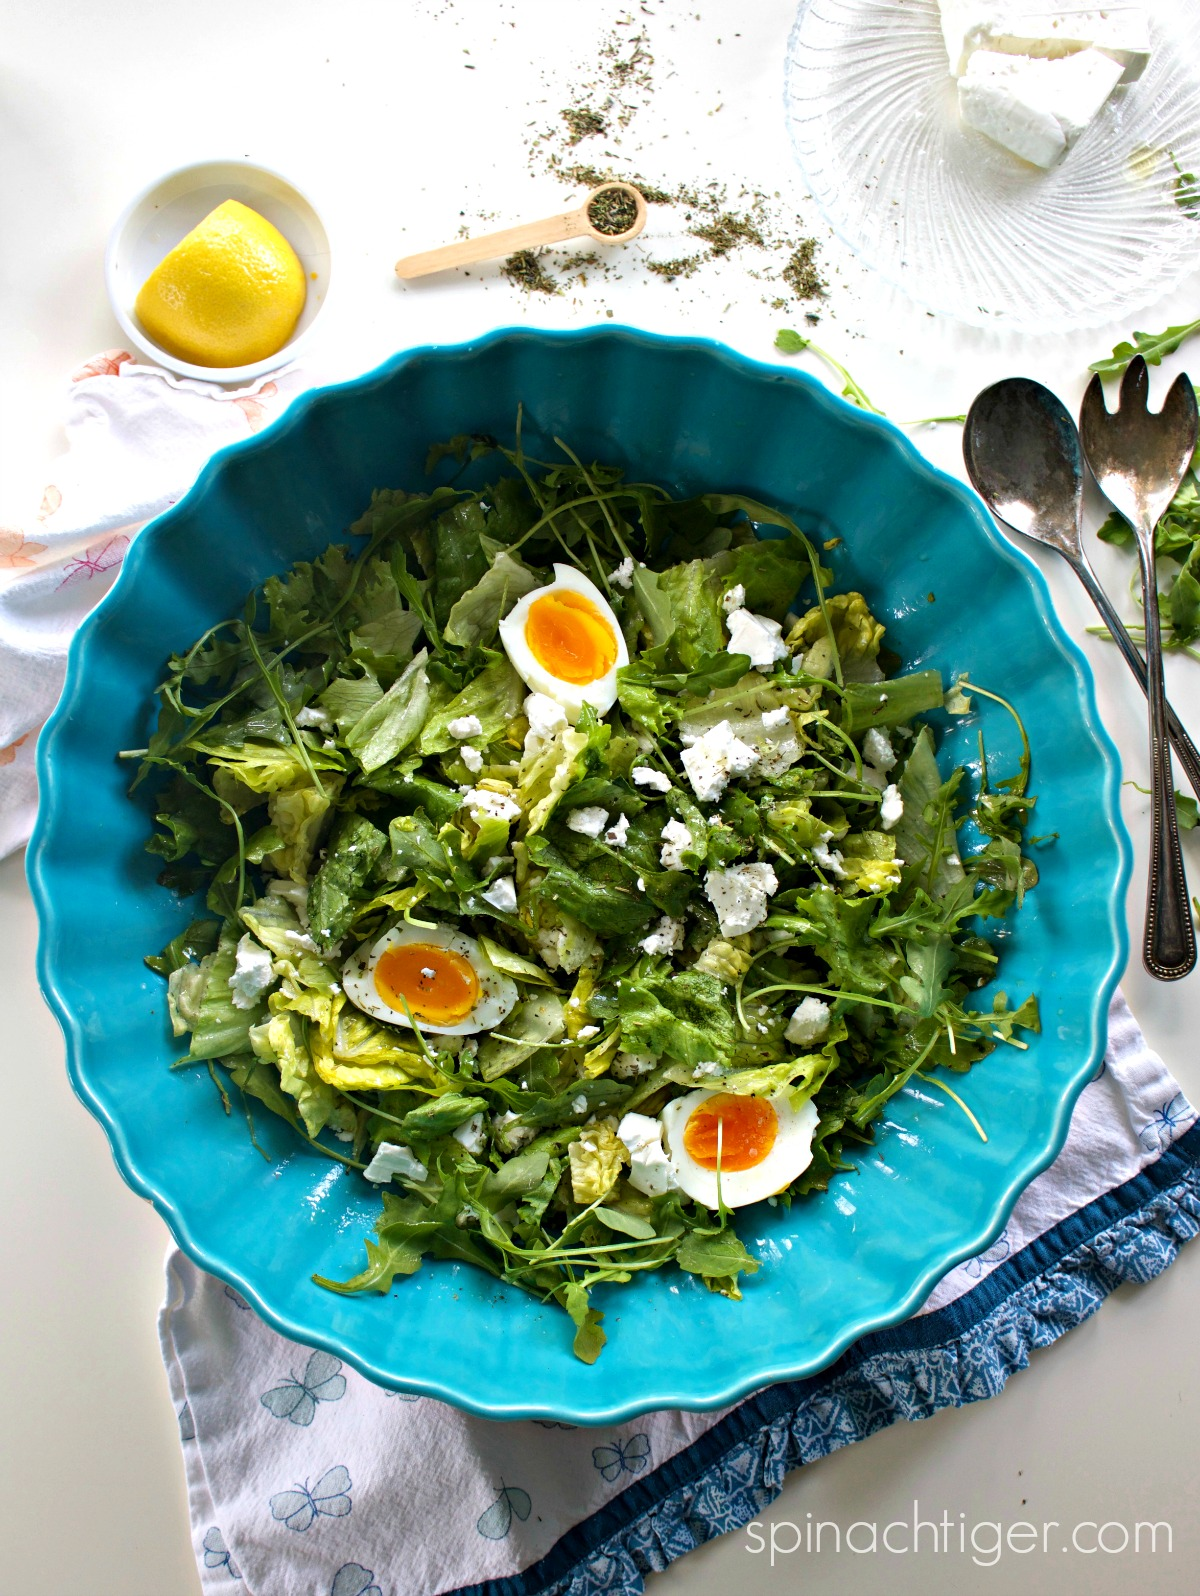 Make Salad with Lemon Vinaigrette Recipe with Soft Hard Boiled Eggs from Spinach Tiger